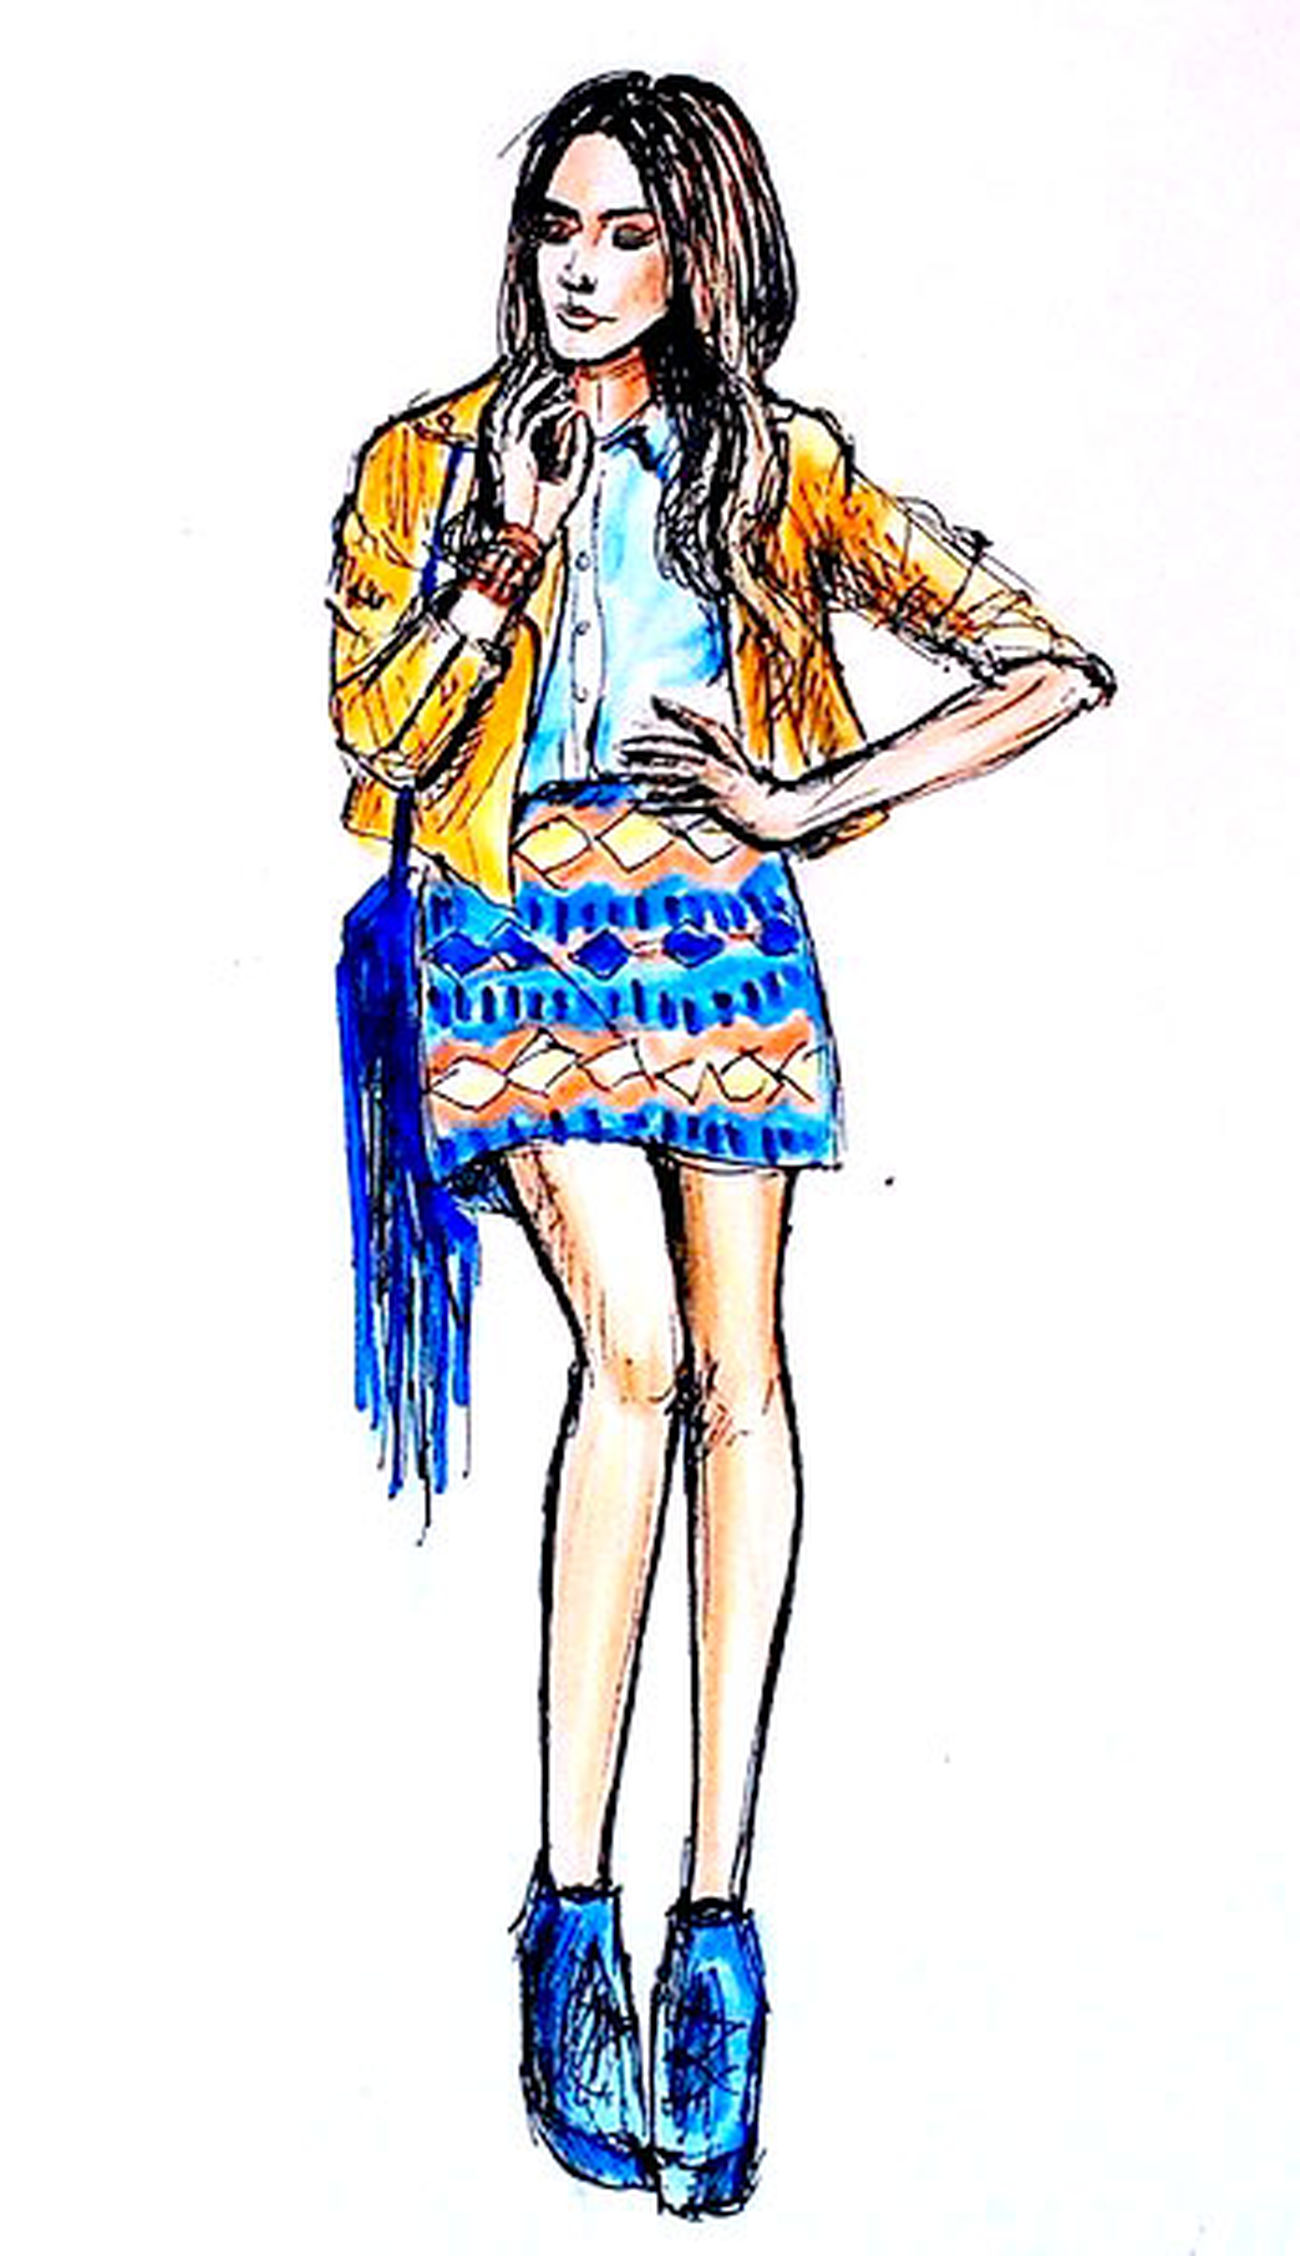 Quicksketch Fashionillustration Illustration Drawing Pen Colored Pencil